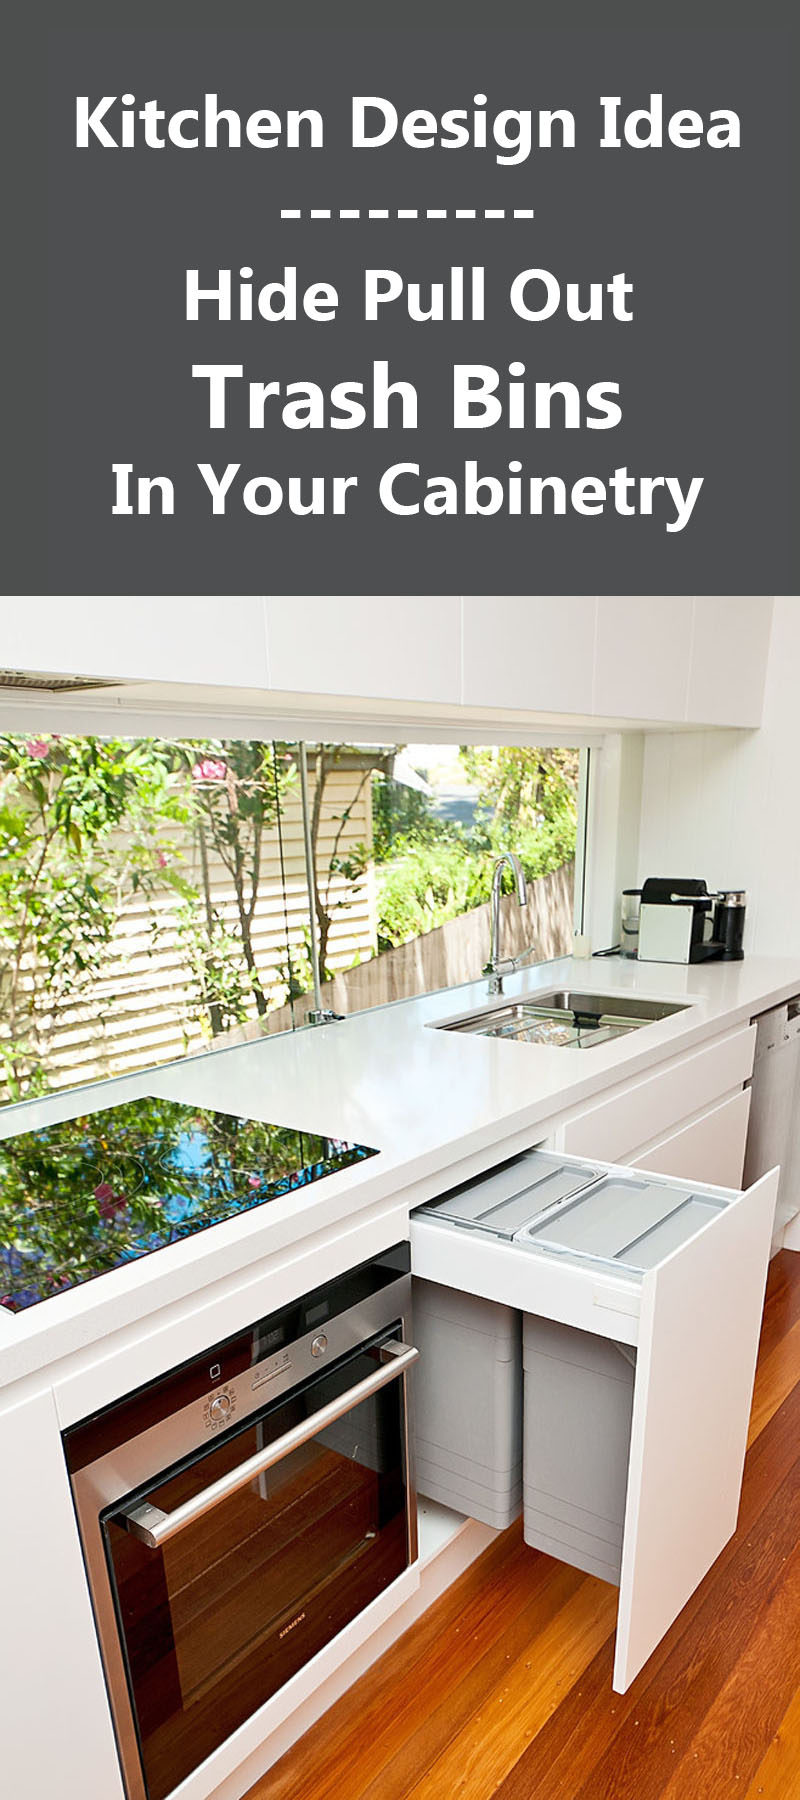 Kitchen Design Idea - Hide Pull Out Trash Bins In Your Cabinetry